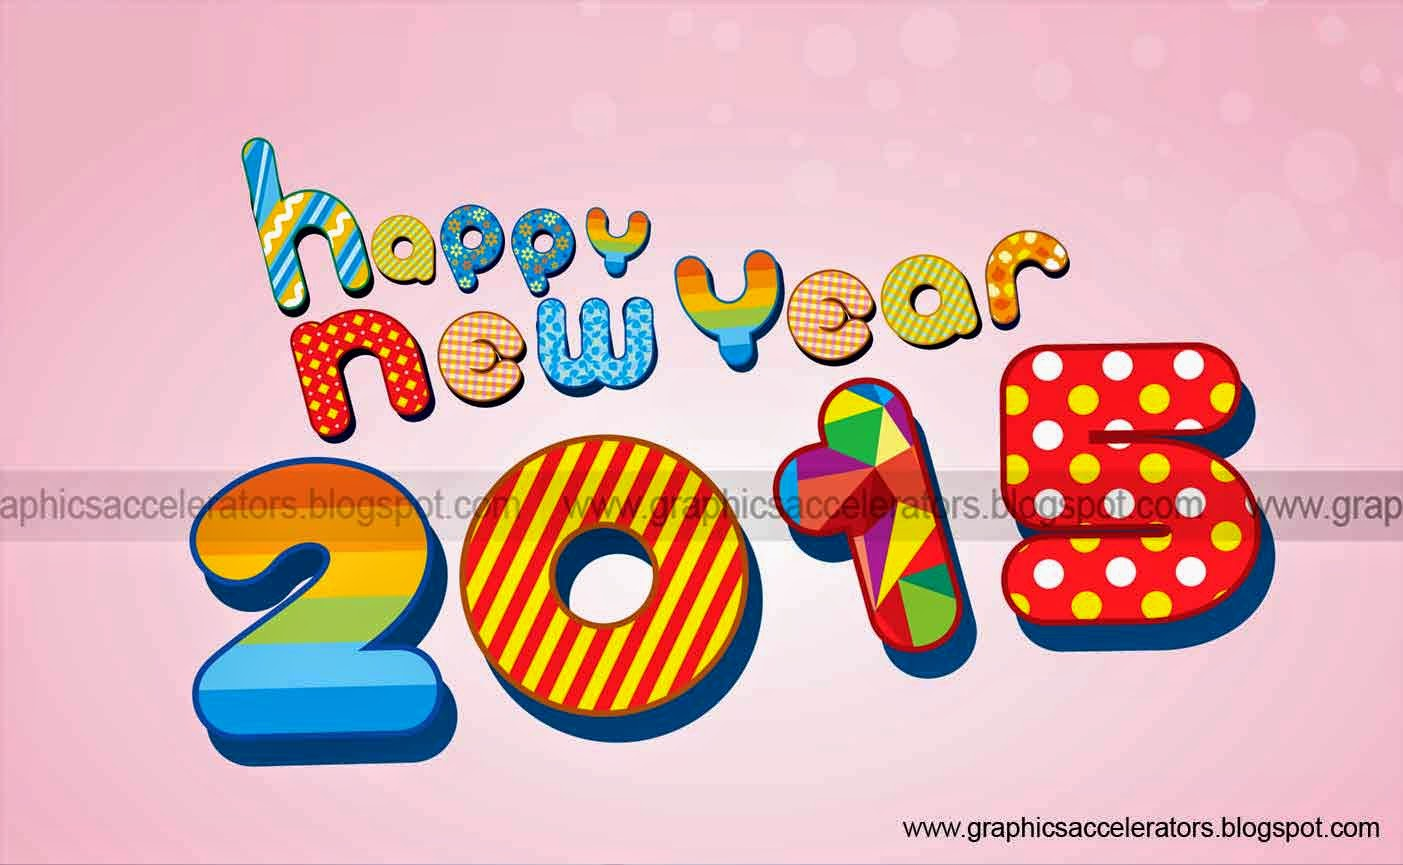 tags happy new year postcards 2015happy new years cardhappy new years wishes 2015happy new year ecards 2015happy new year cardideas 2015happy new